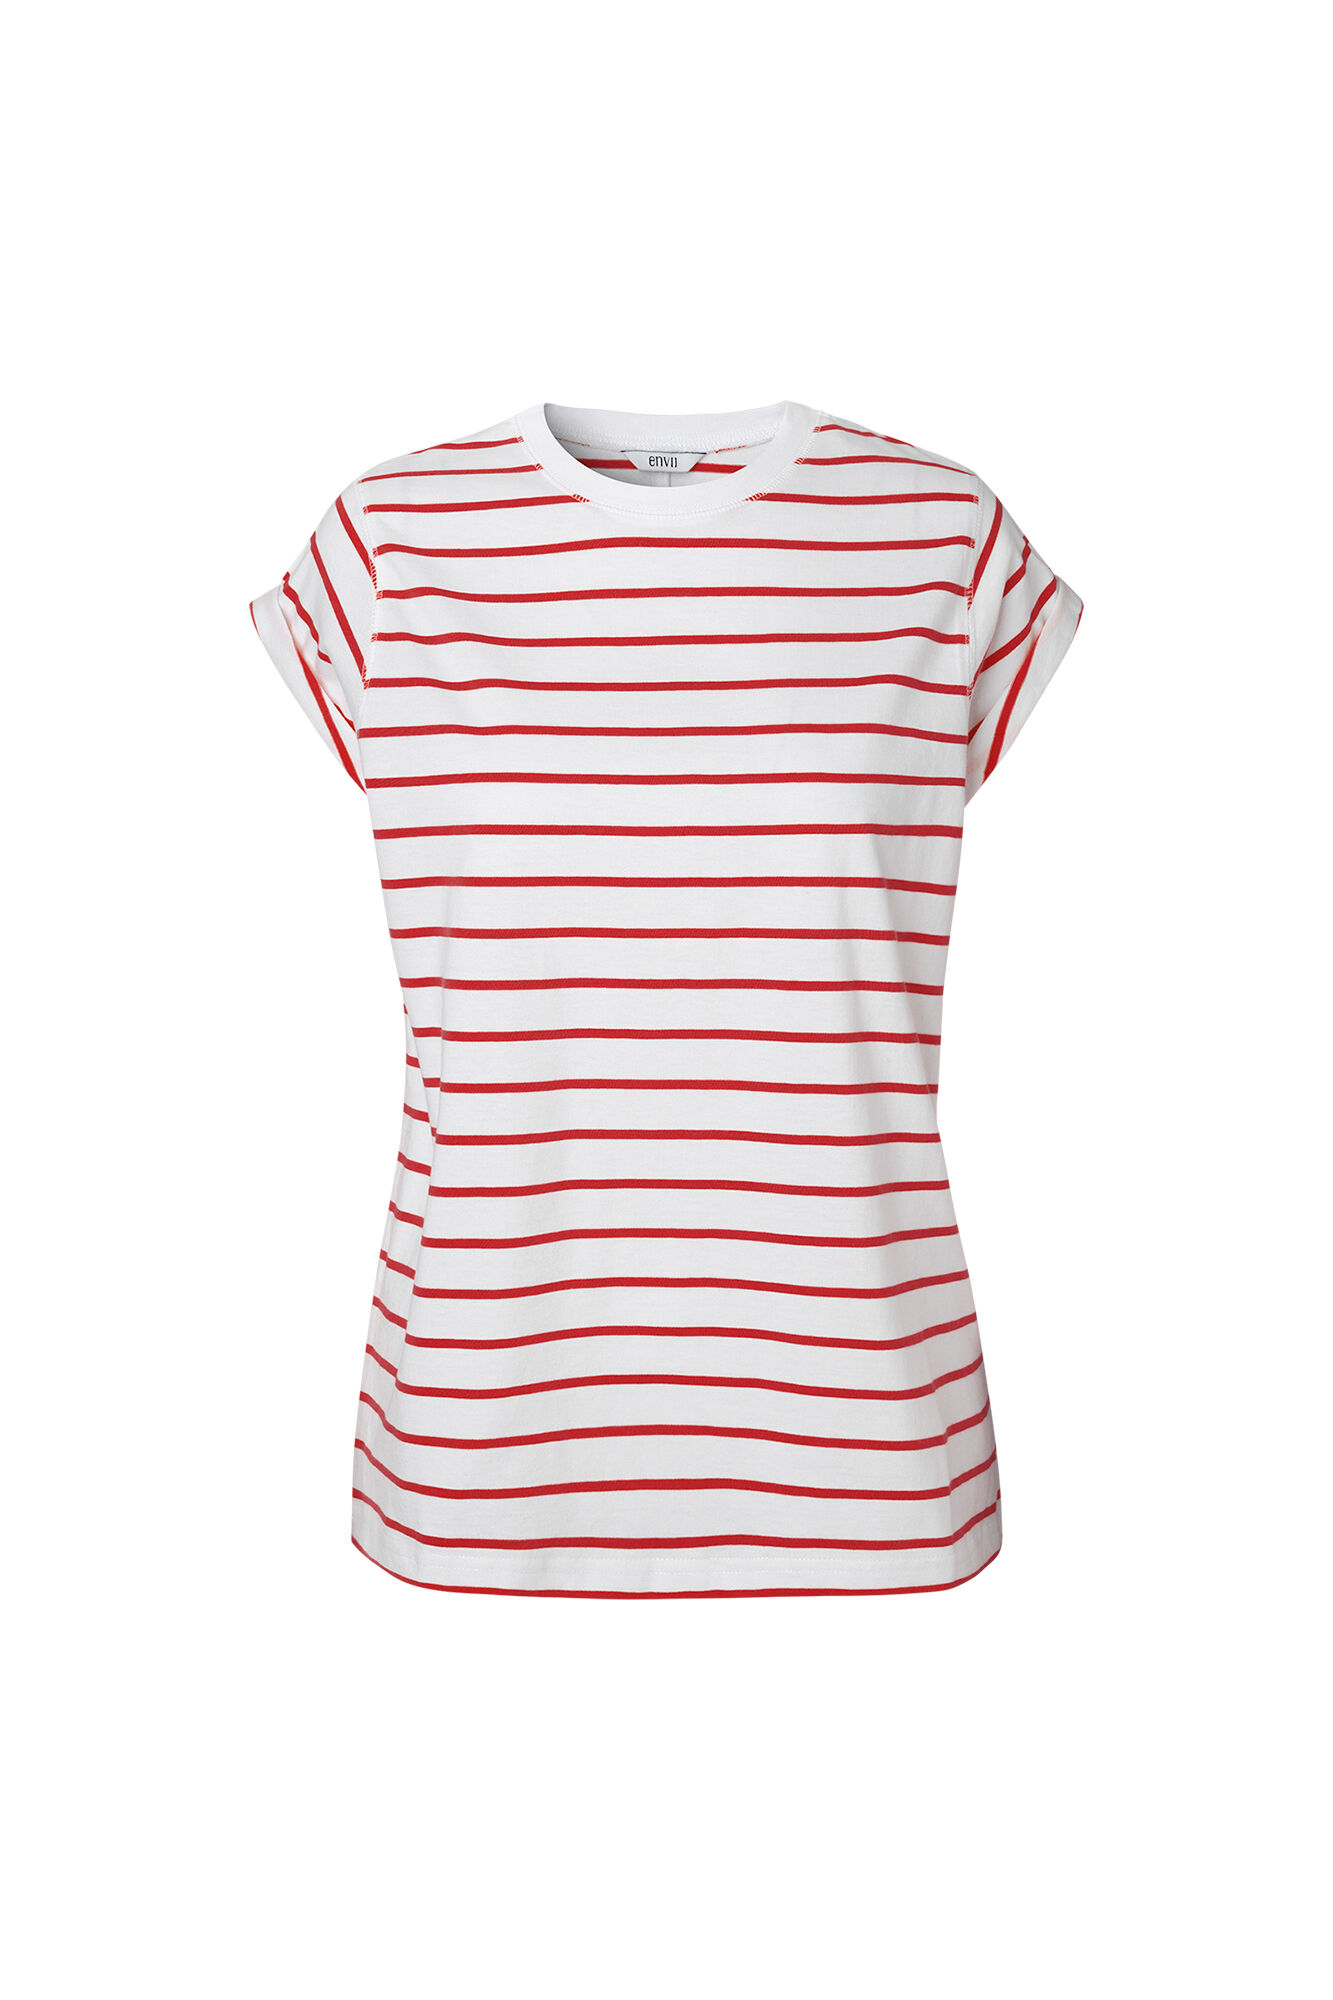 ENANDY TEE STRIPE 5915, RED-WHITE STRIPE